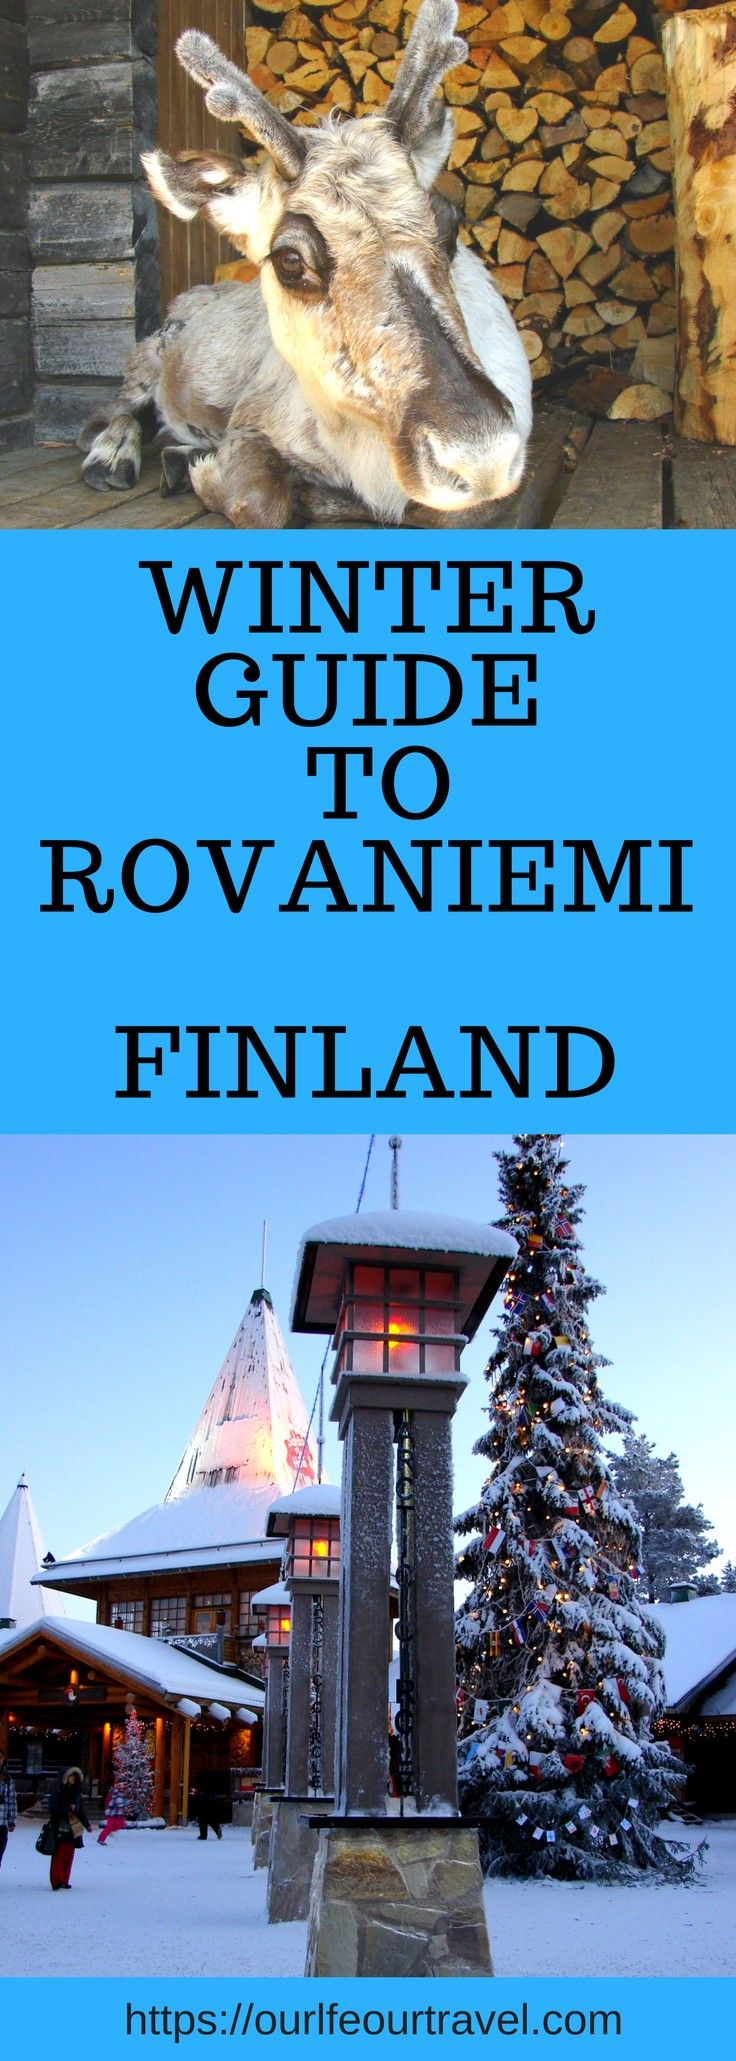 Rovaniemi (Lapland) Winter Activity and Sightseeing Guide. Are you looking for a perfect winter holiday destination? Need an inspiration for Christmas break? Are you dreaming of deep and white snow-covered landscape and have an active holiday at the same time? Ice fishing, snowmobile driving, riding by a reindeer or husky sled, huntingfor northern lights, and last but not least, you can meet with Santa too! #rovaniemi #lapland #winter #finland